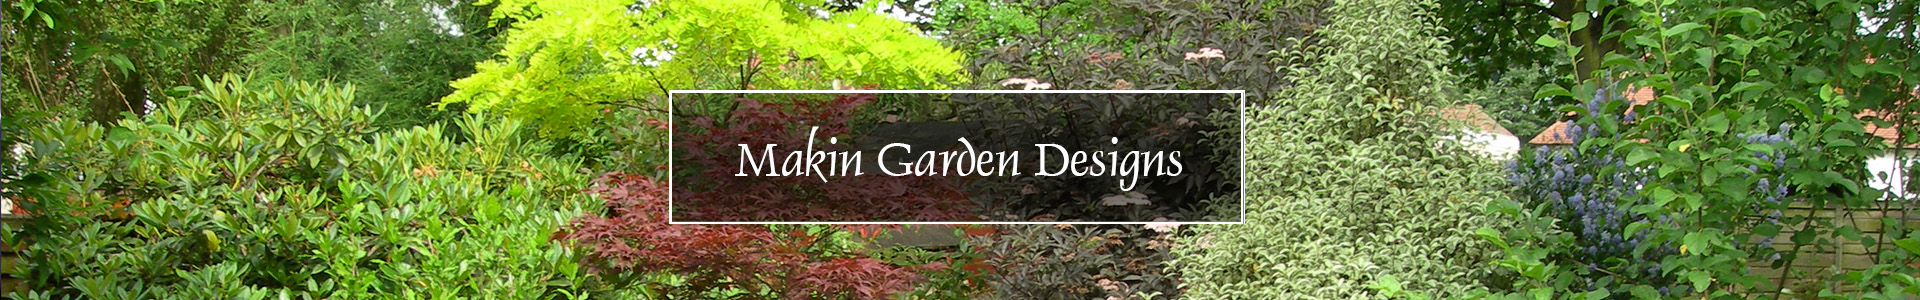 Makin Garden Designs-Banner